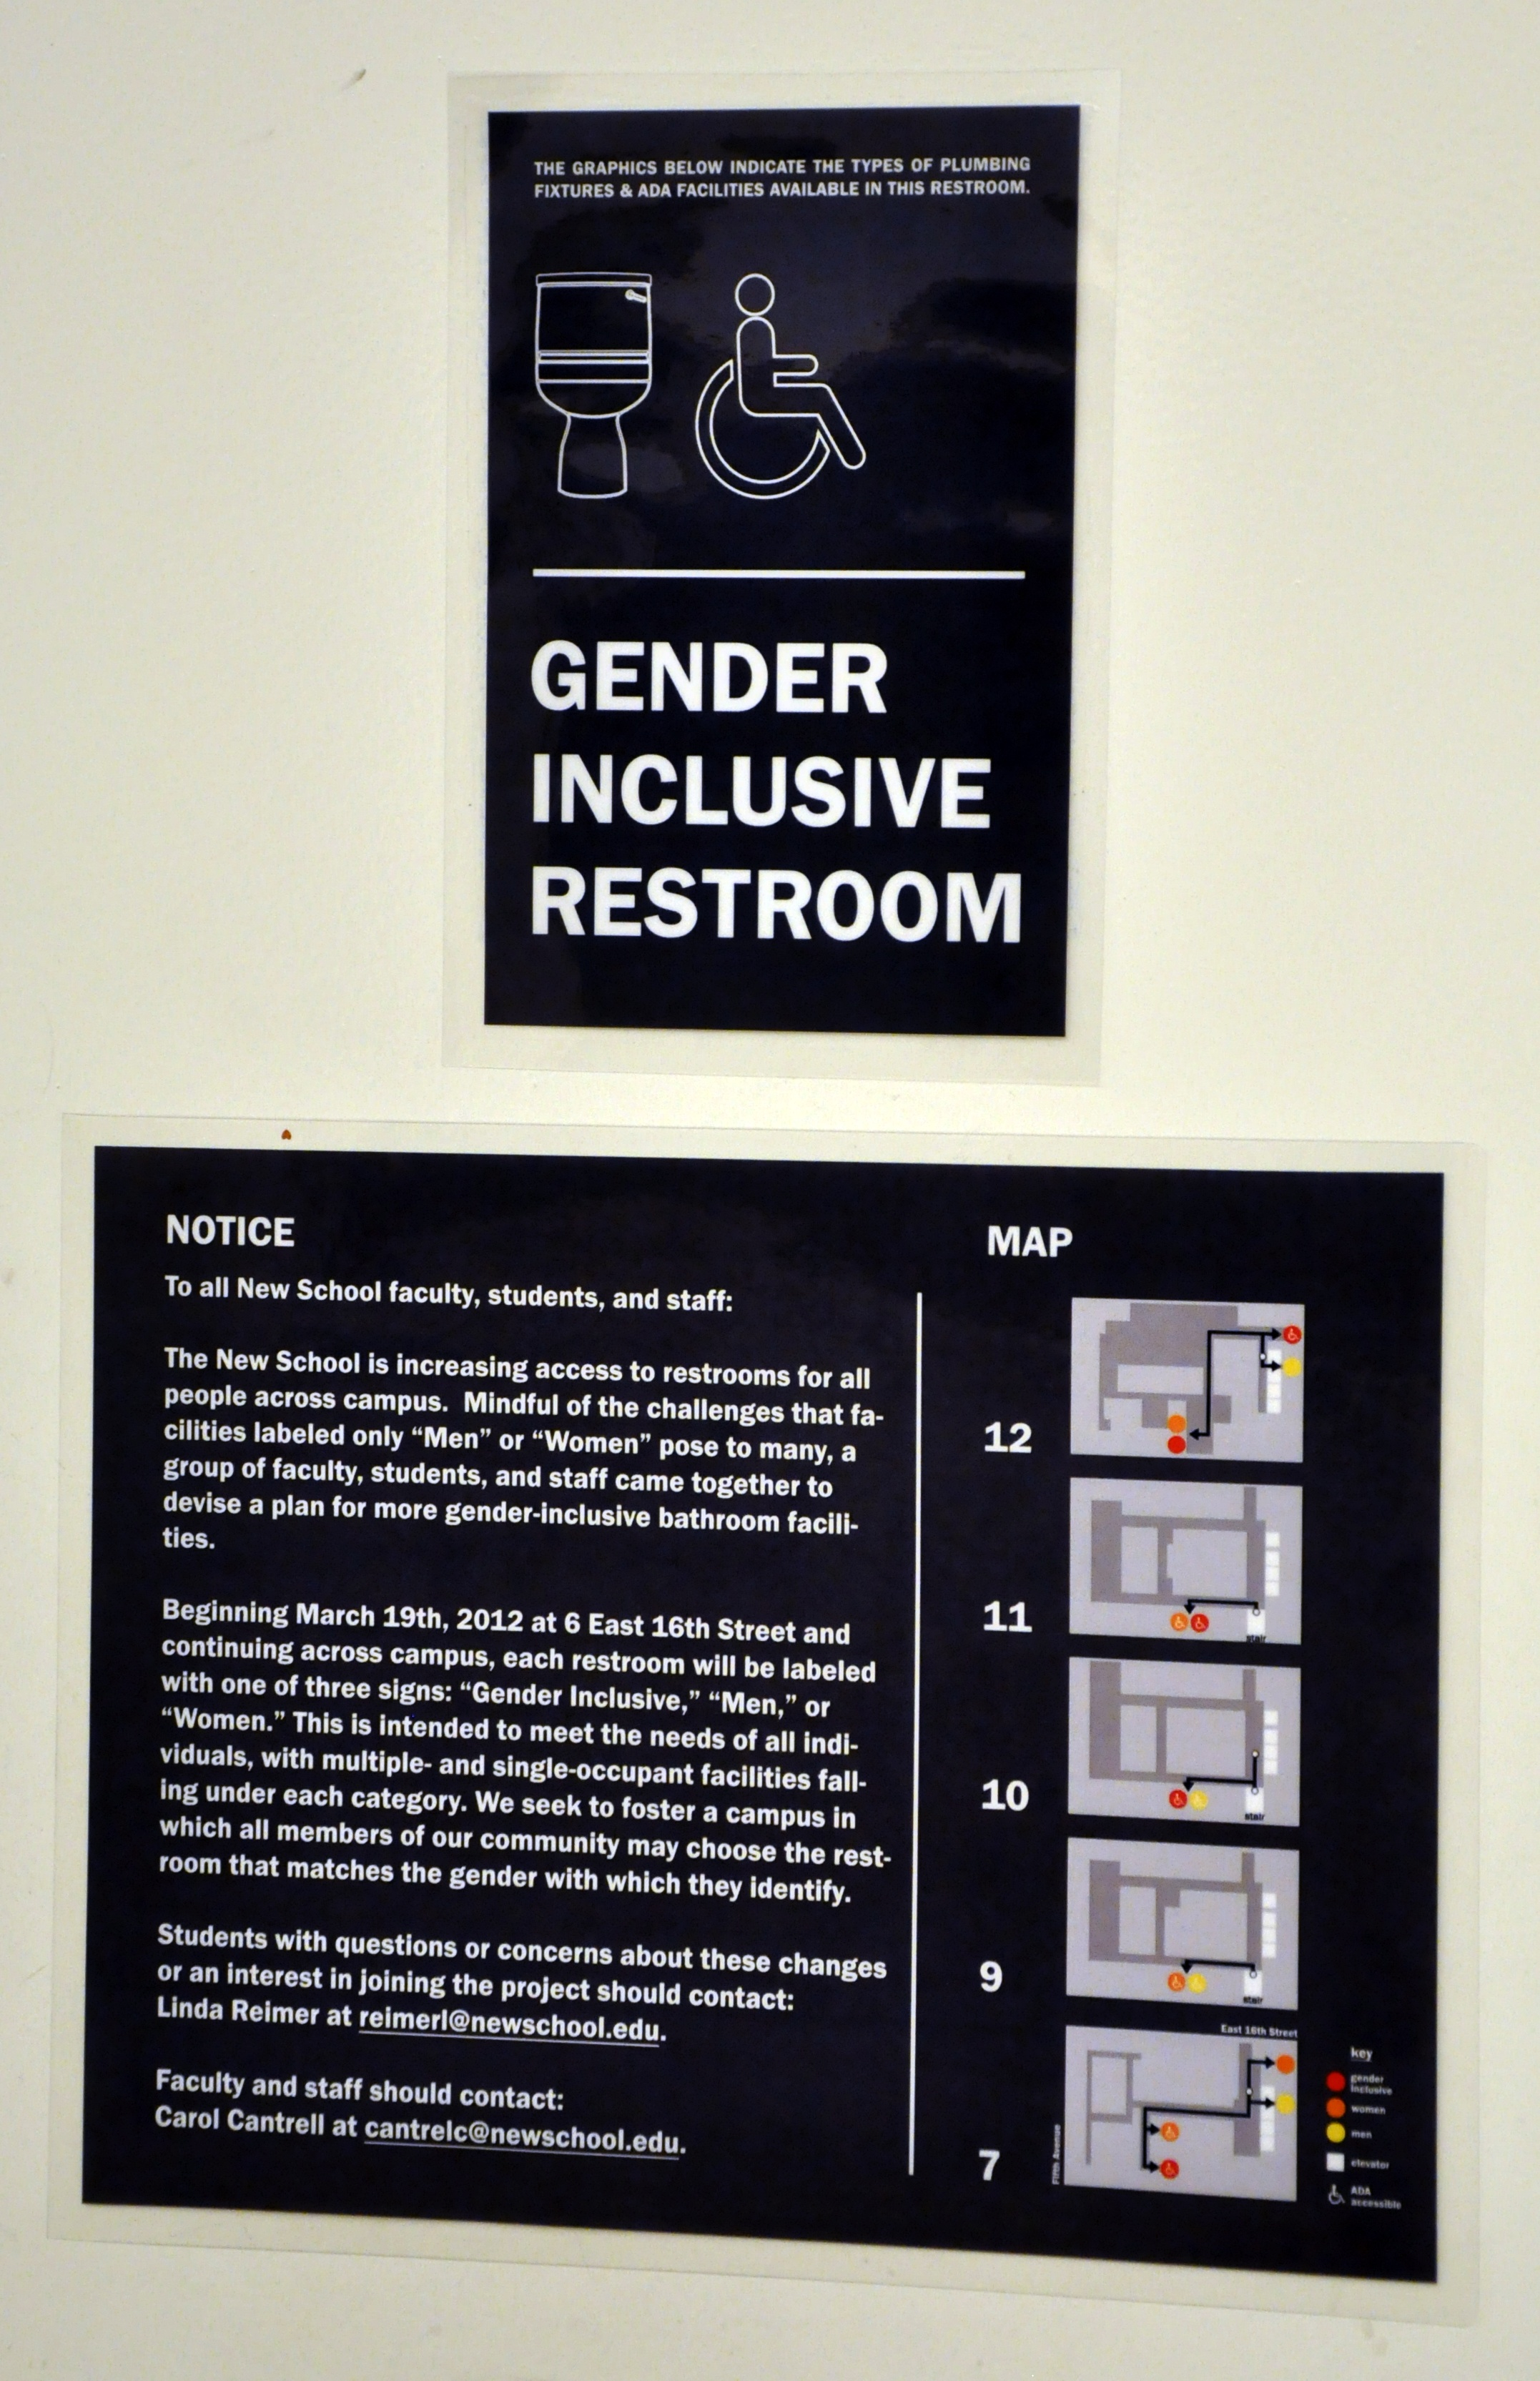 gender inclusive bathrooms arrive at the new school - the new